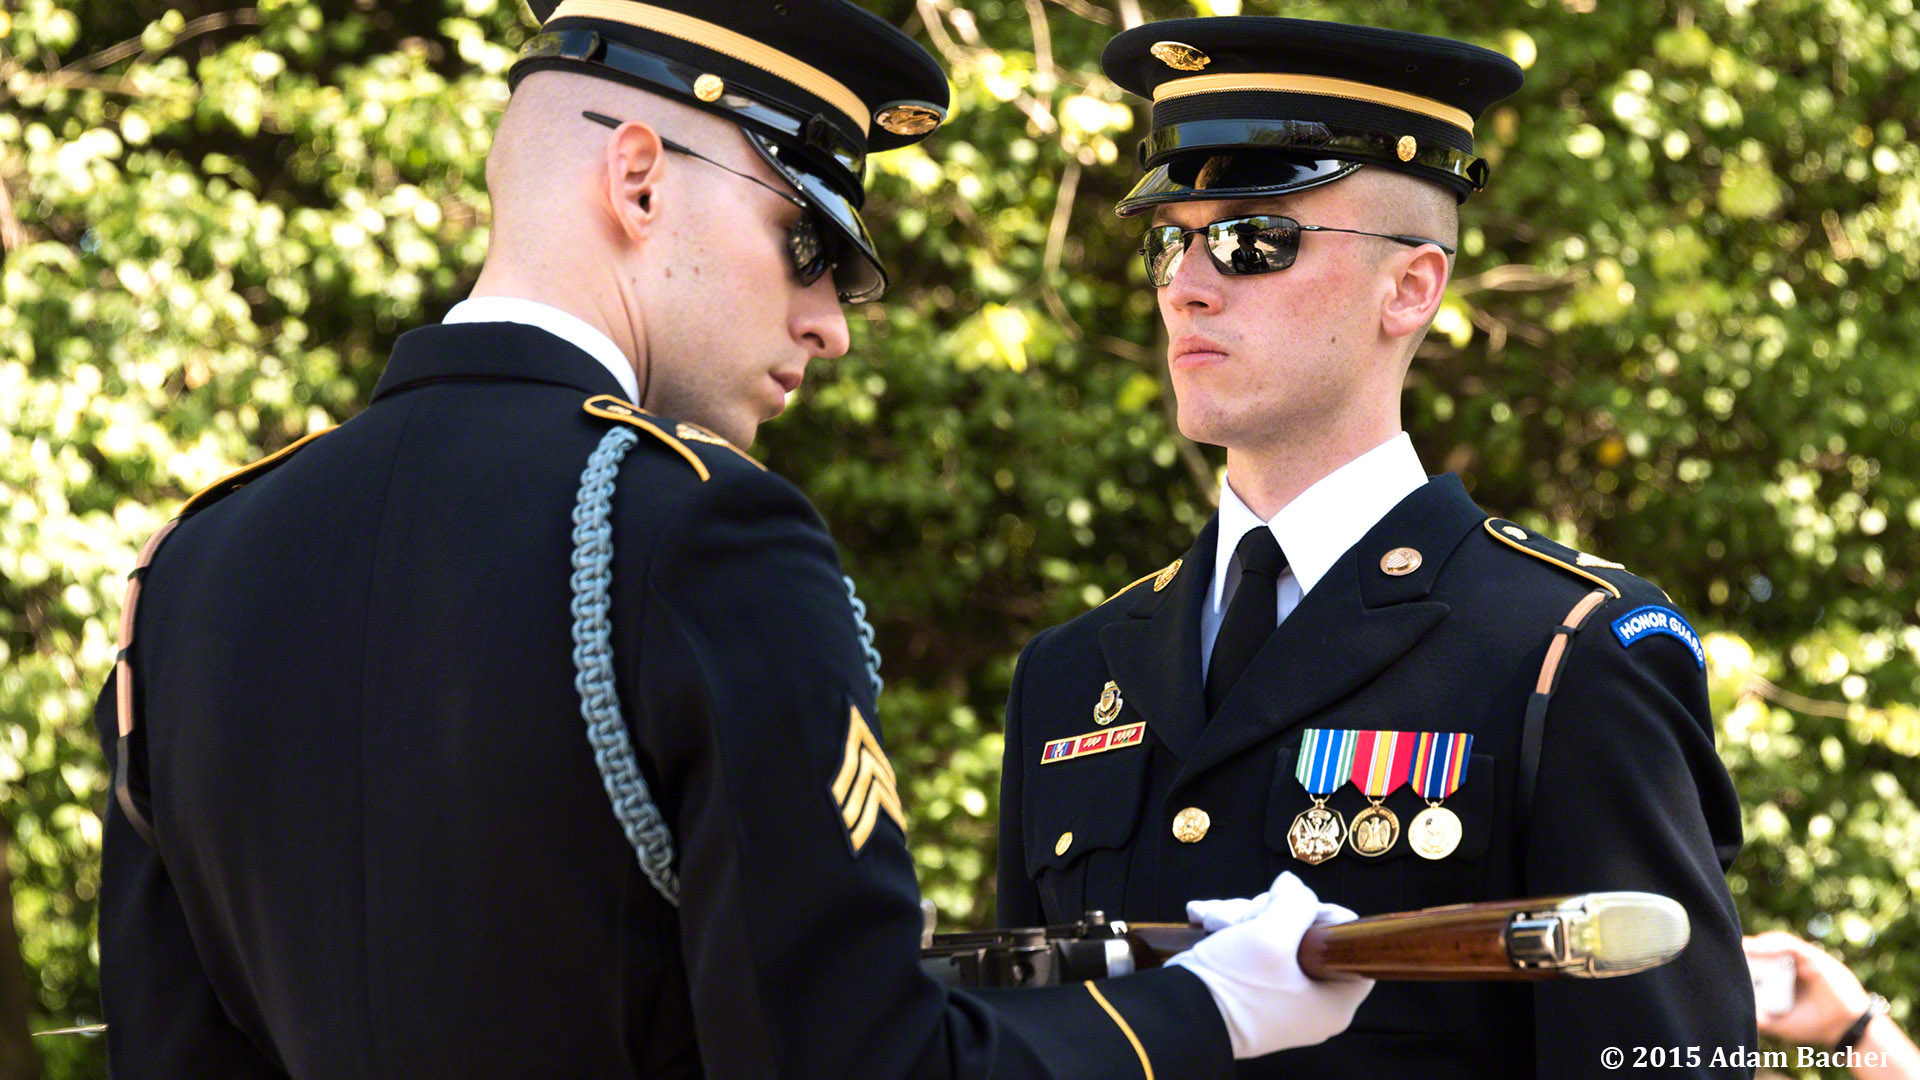 Changing of the Gard at Tomb of Unknowns at Arlington National Cemetery